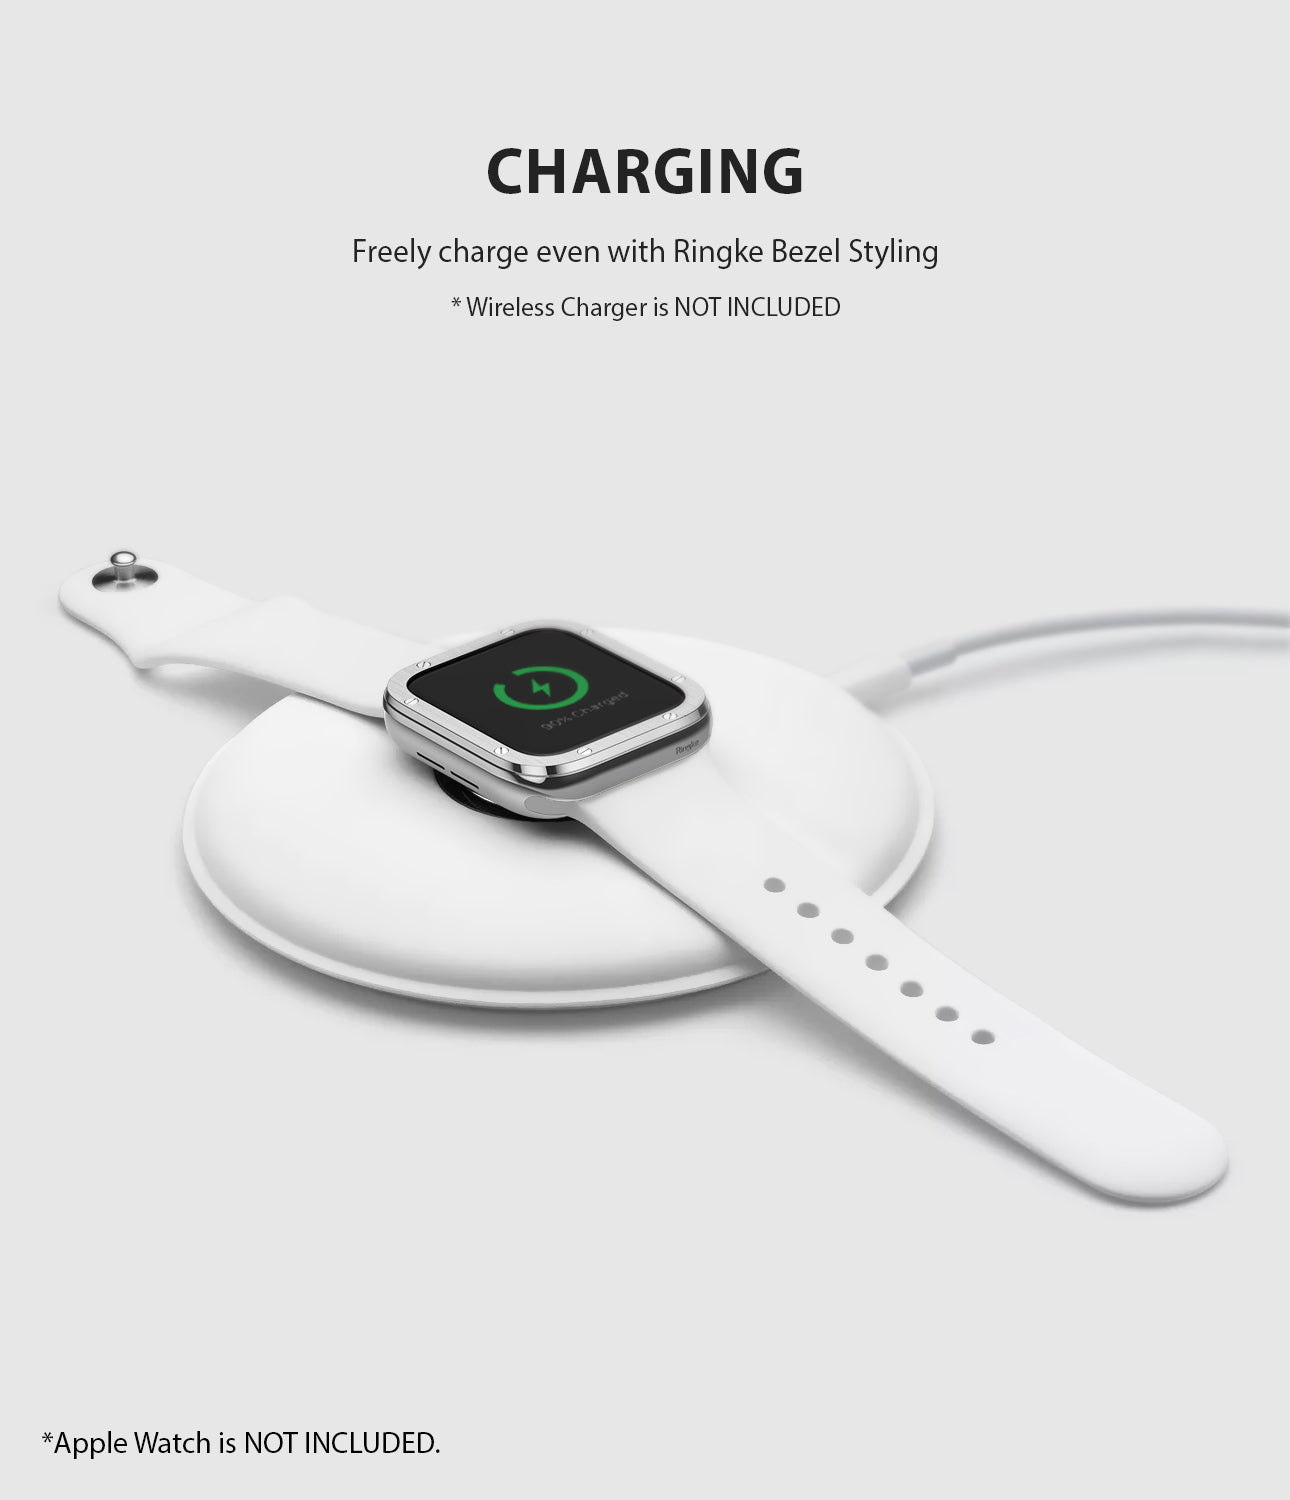 apple watch 3 2 1 38mm case ringke bezel styling stainless steel frame cover 38-40 wireless charging compatible